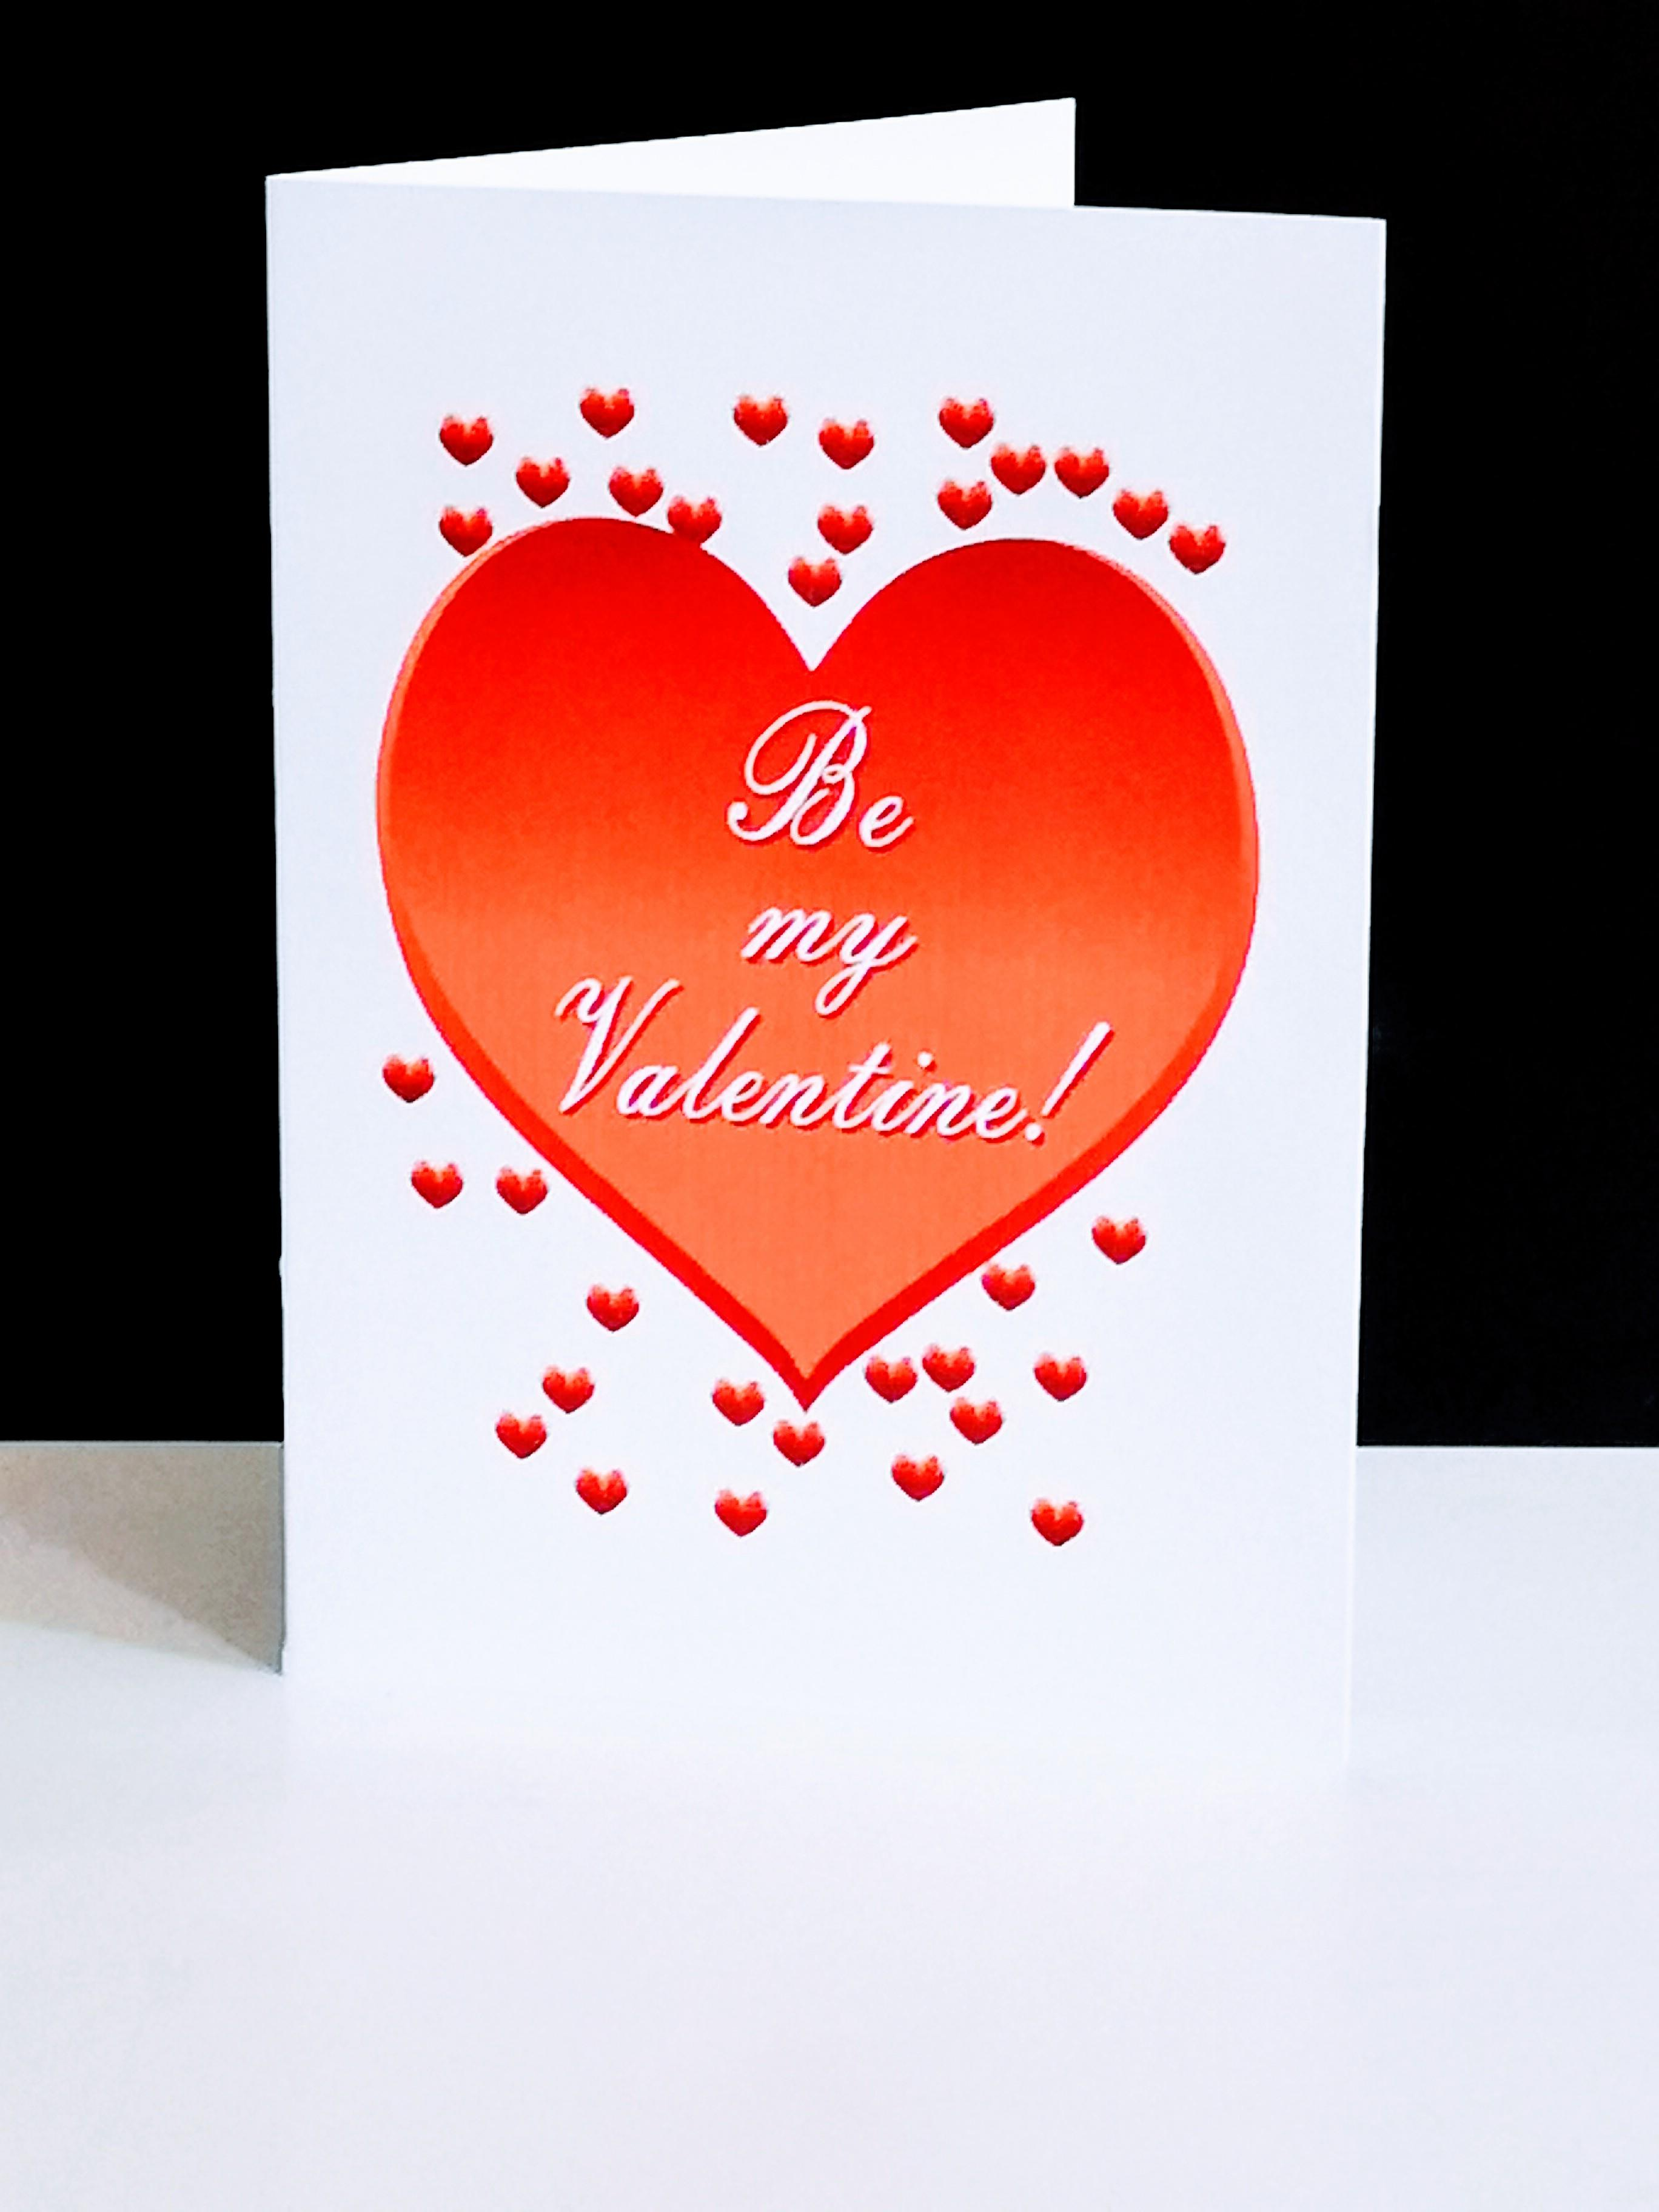 be my valentines gift card shop east dulwich